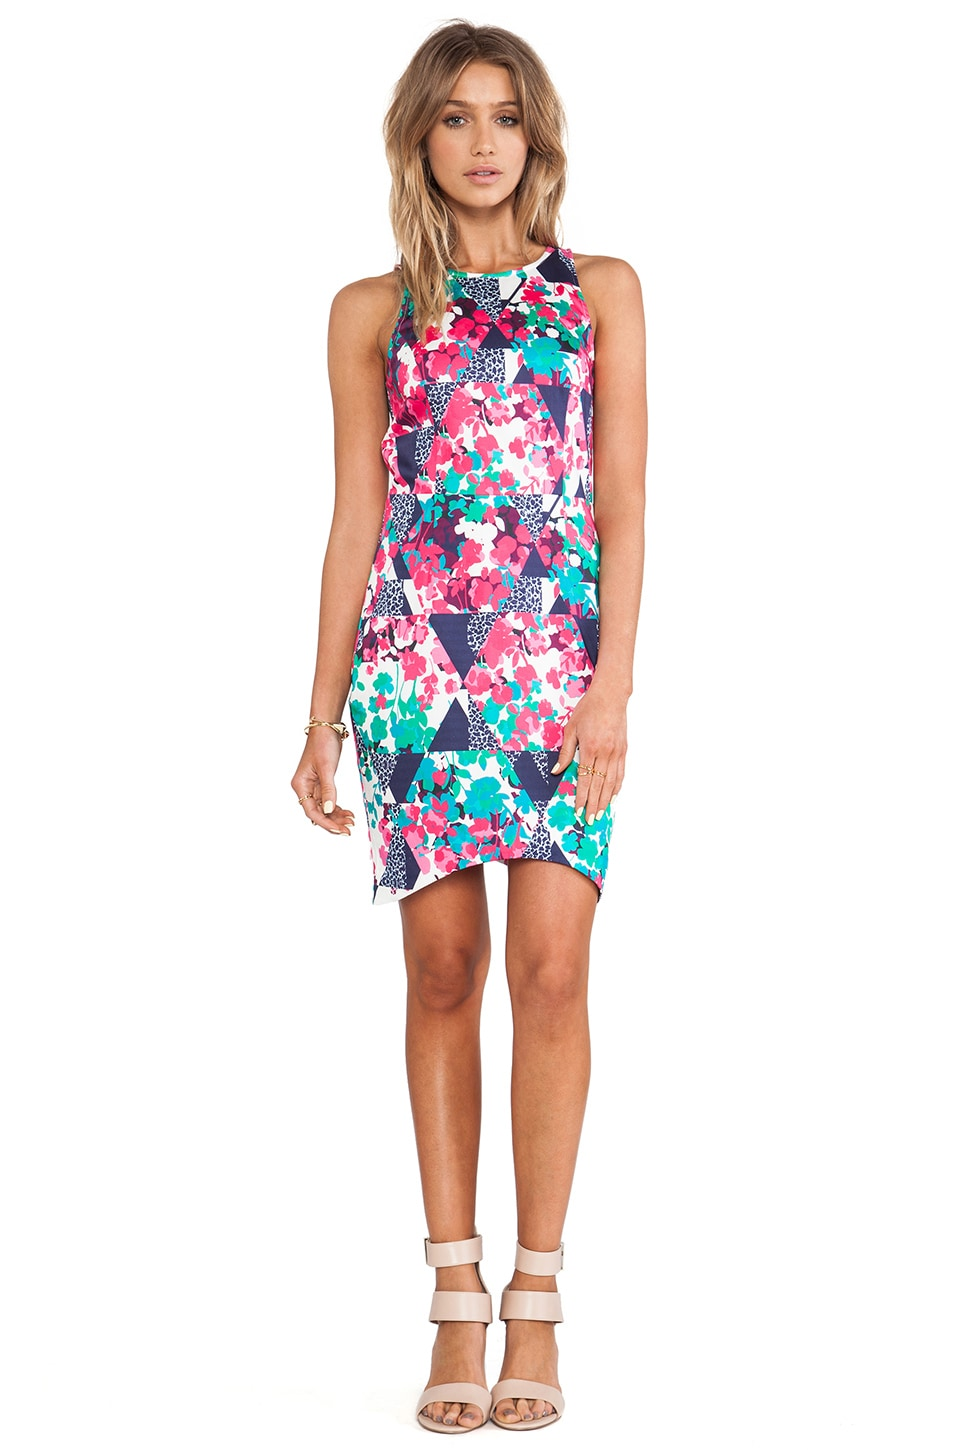 ISLA_CO Fern Vine Dress in Kaleidoscope Print